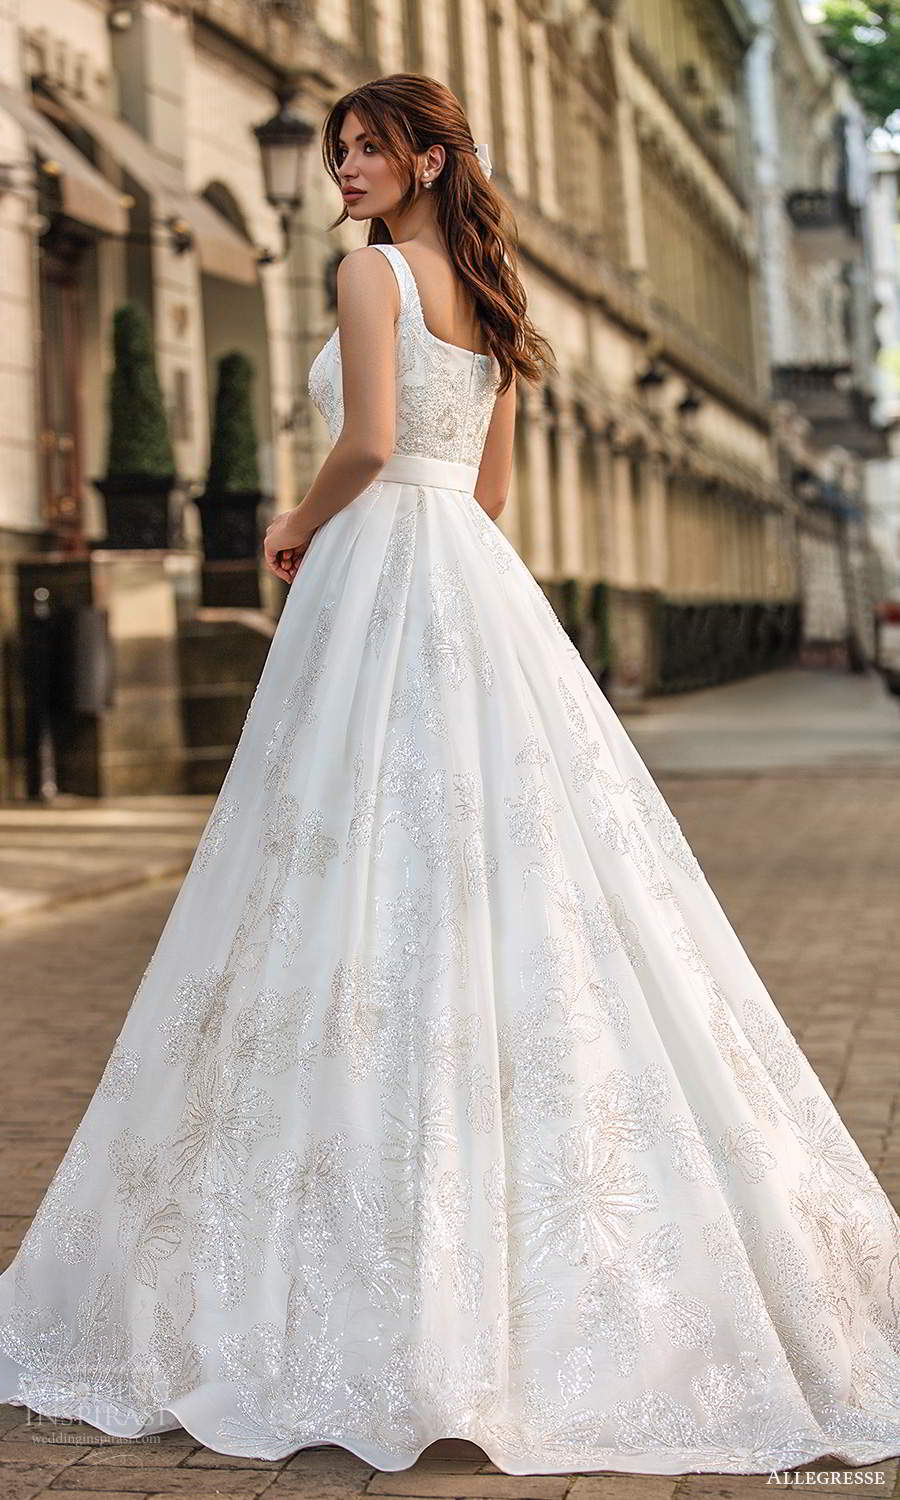 allegresse 2021 bridal sleeveless thick straps square neckline fully embellished a line ball gown wedding dress chapel train (6) bv